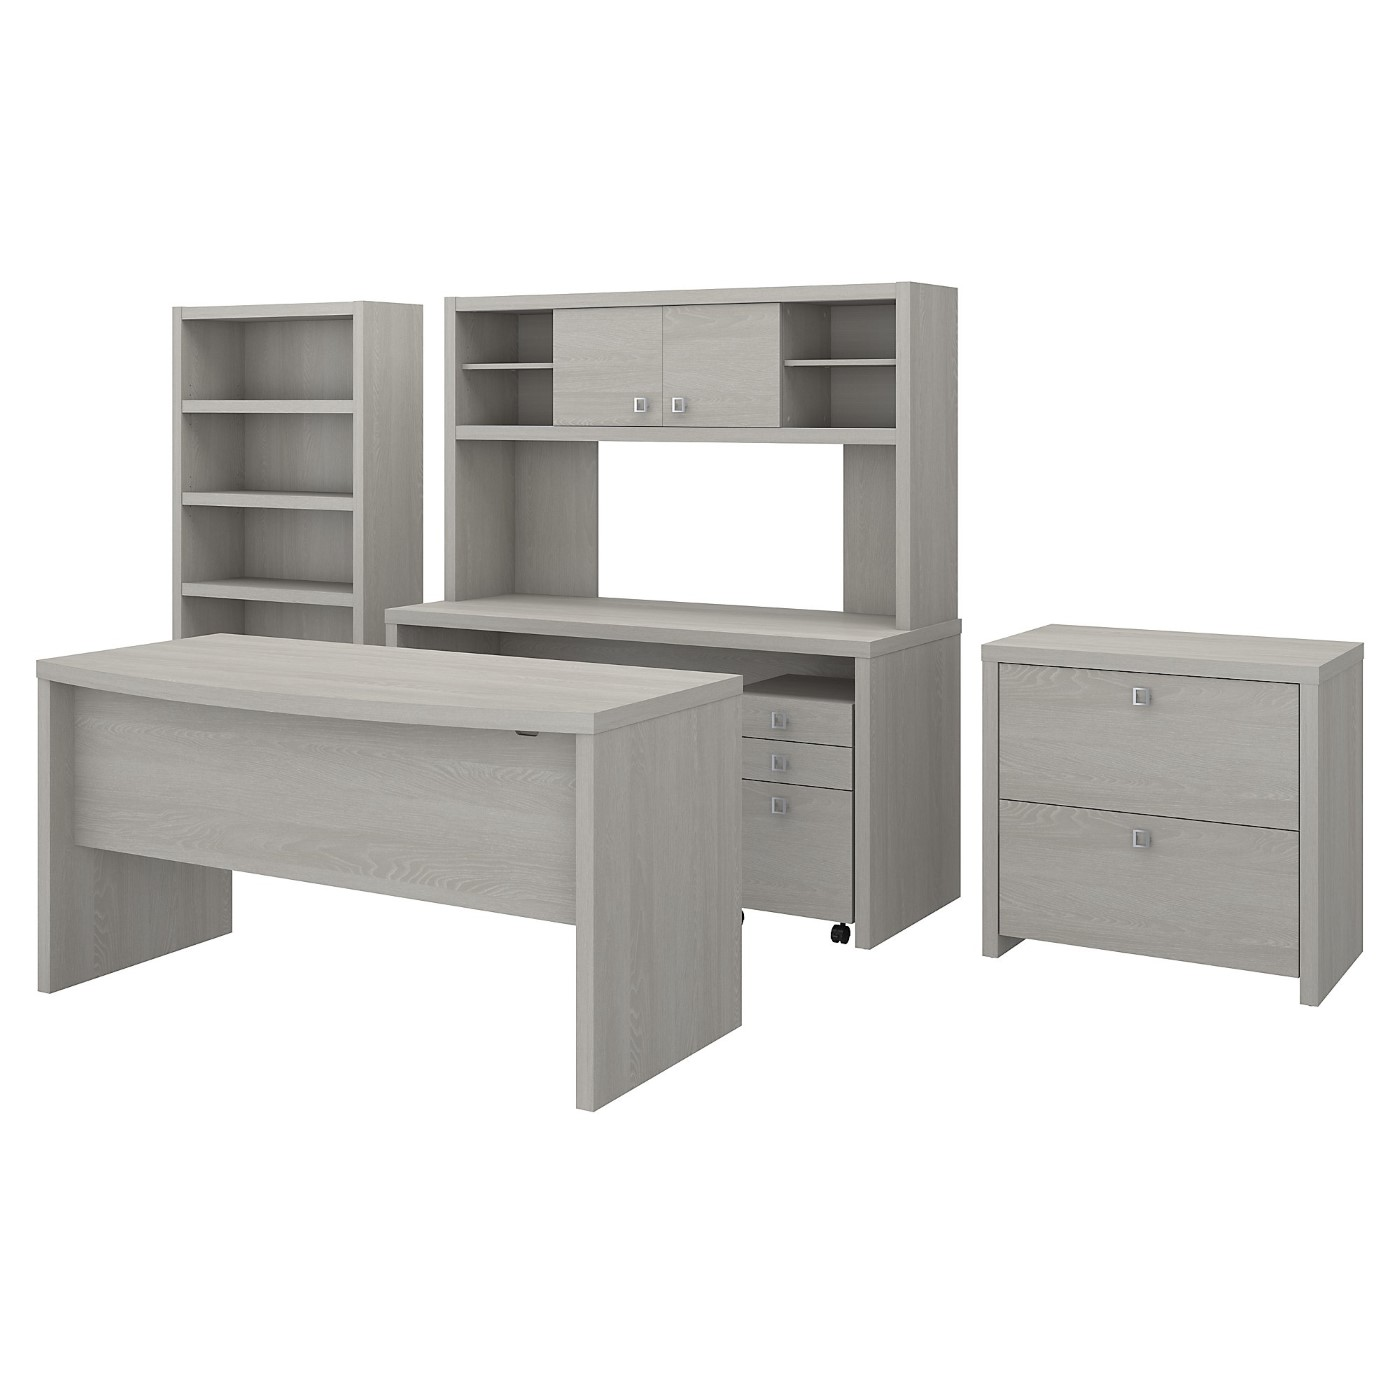 The kathy ireland� Echo Bow Front Desk, Credenza with Hutch, Bookcase and File Cabinets is Sustainable Eco Friendly Furniture. Includes Free Shipping! 30H x 72L x 72W  VIDEO BELOW.